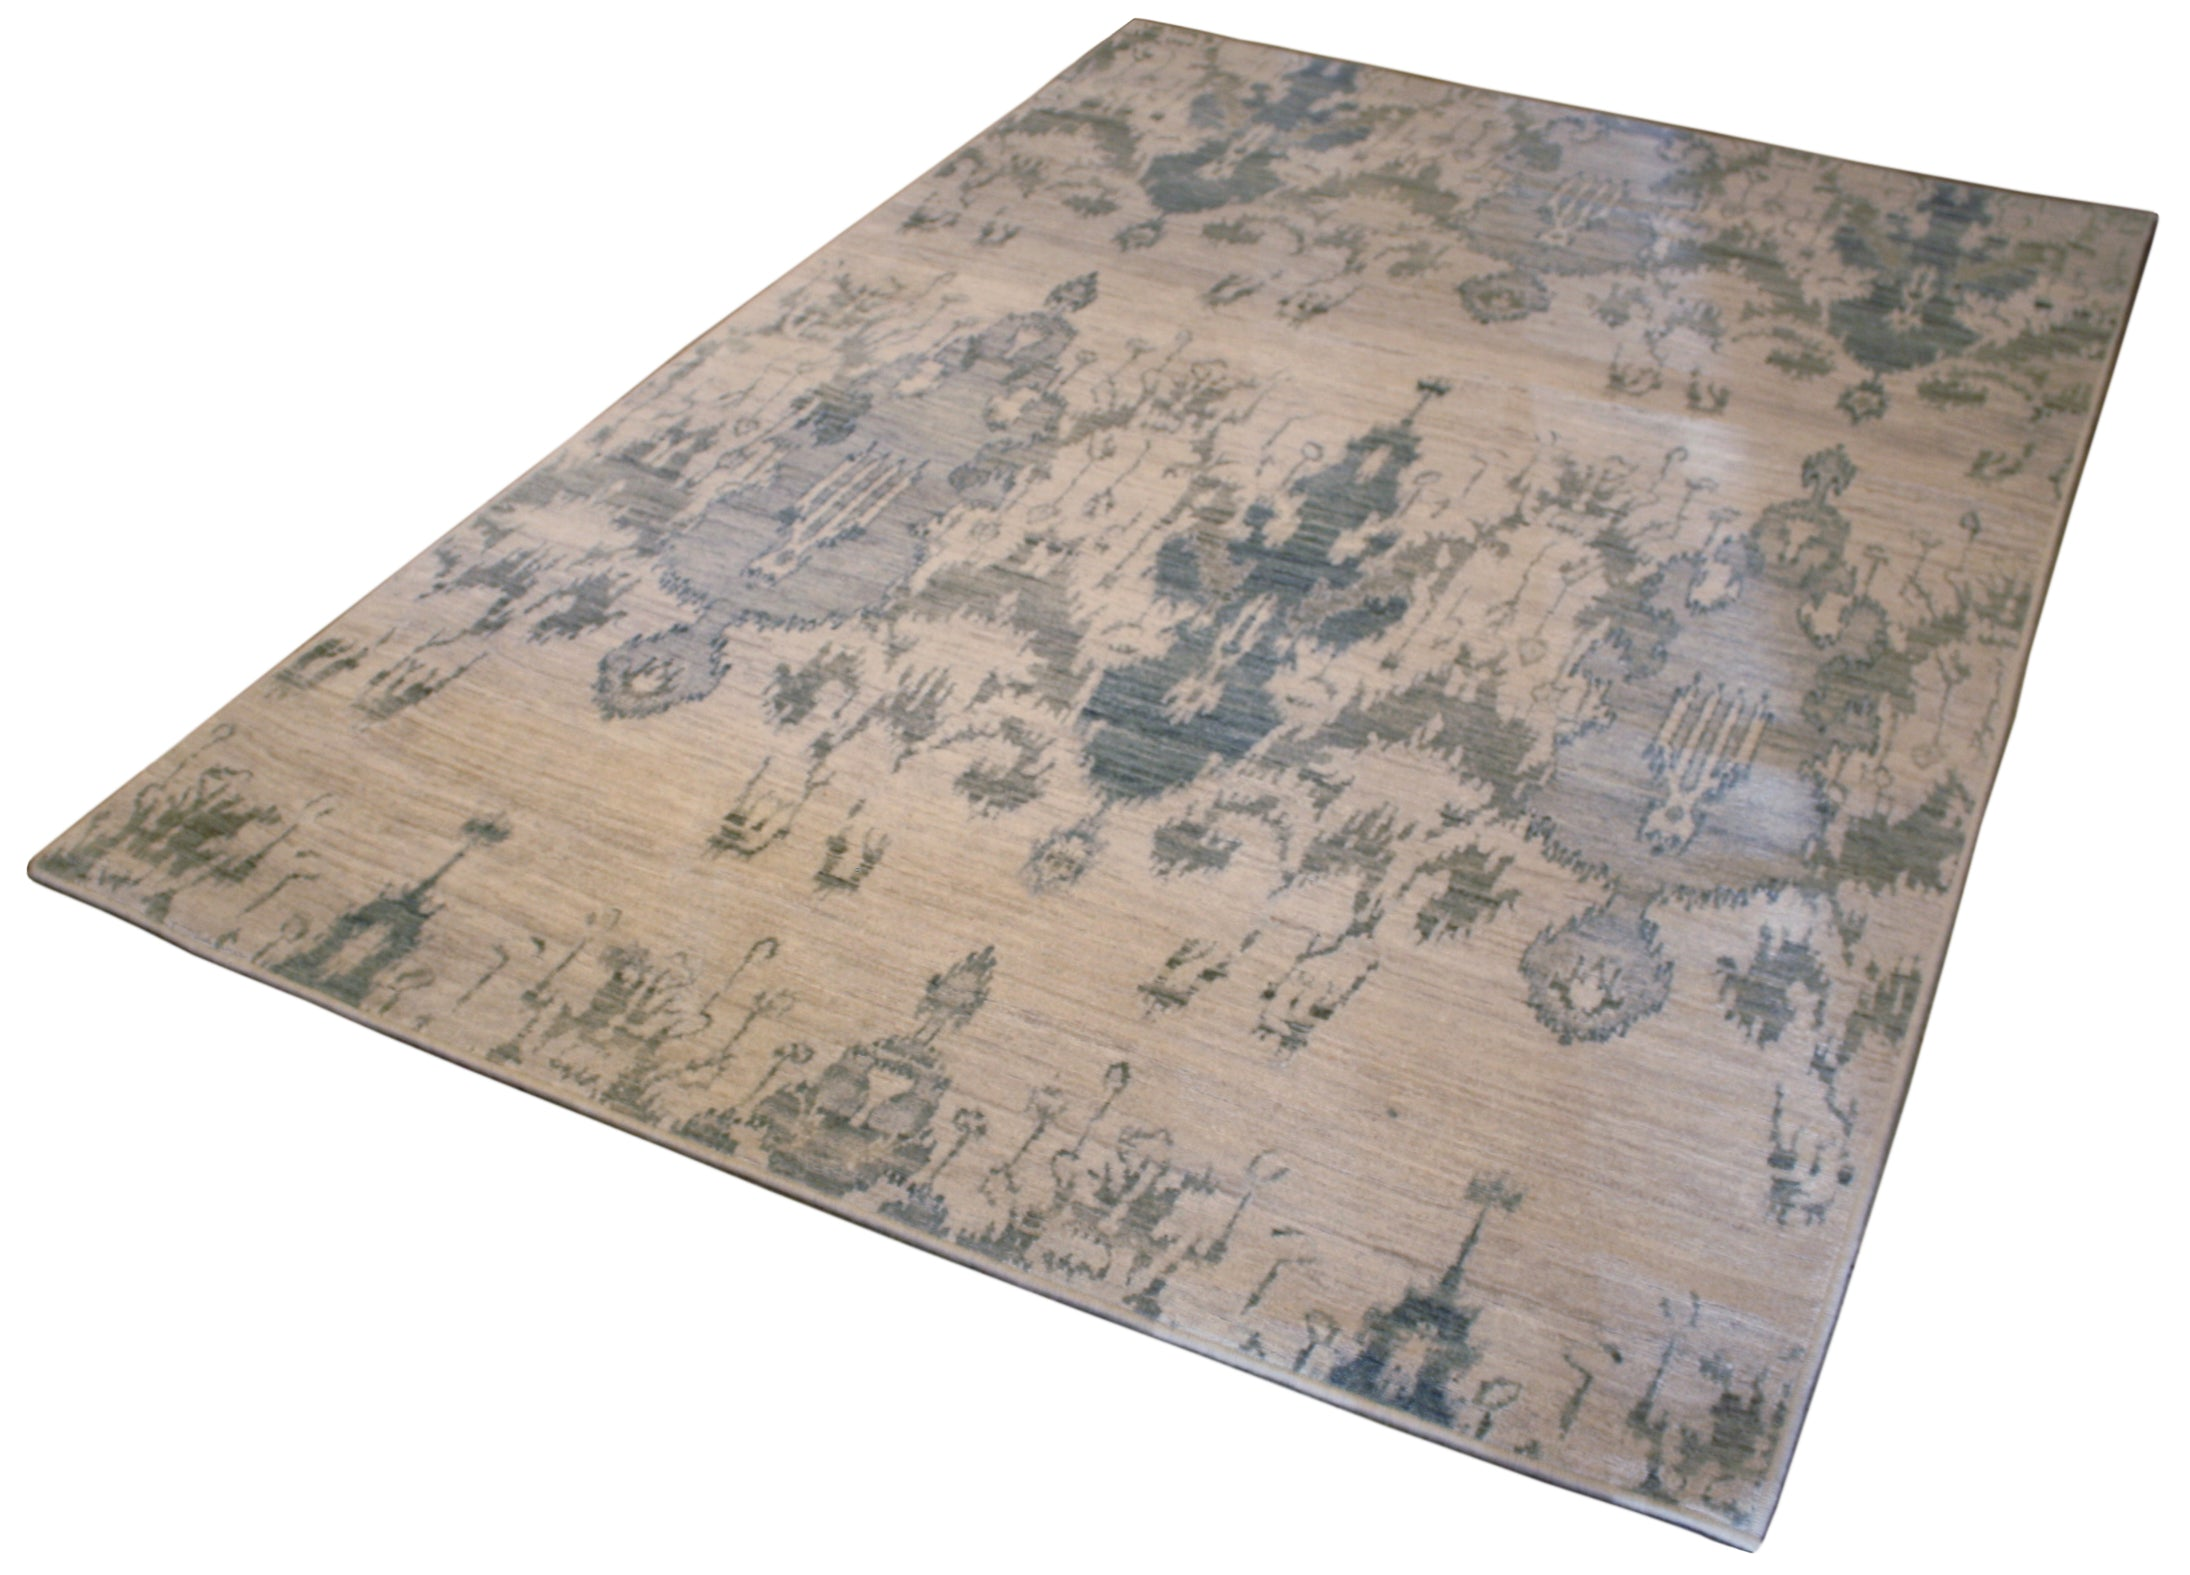 8x10 transitional area rug resized to 5x7